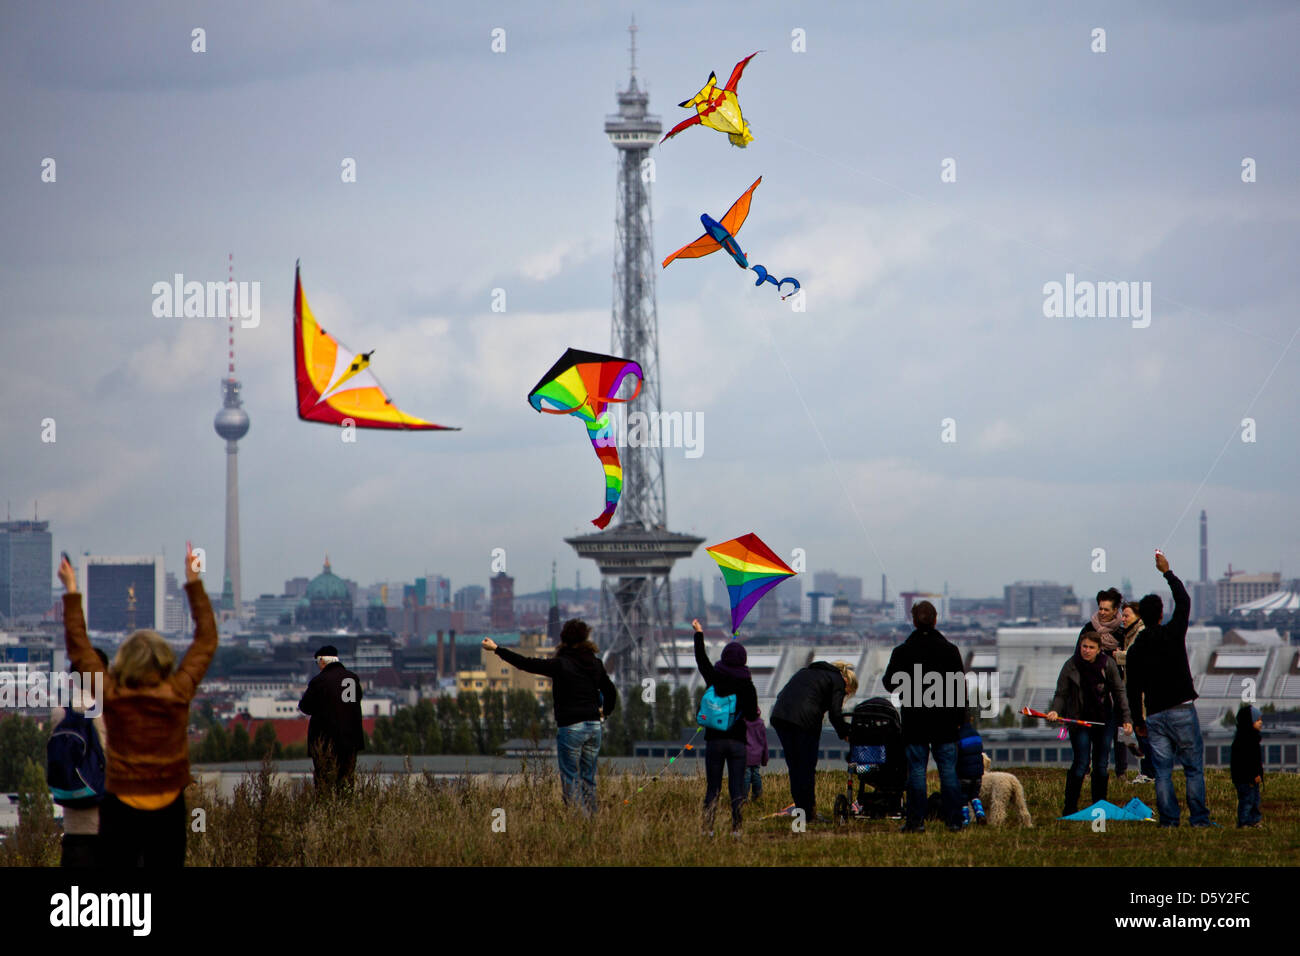 Numerous people let their kites fly on Teufelsberg (lit. Devil's Mountain) in Berlin, Germany, 07October 2012. Stock Photo